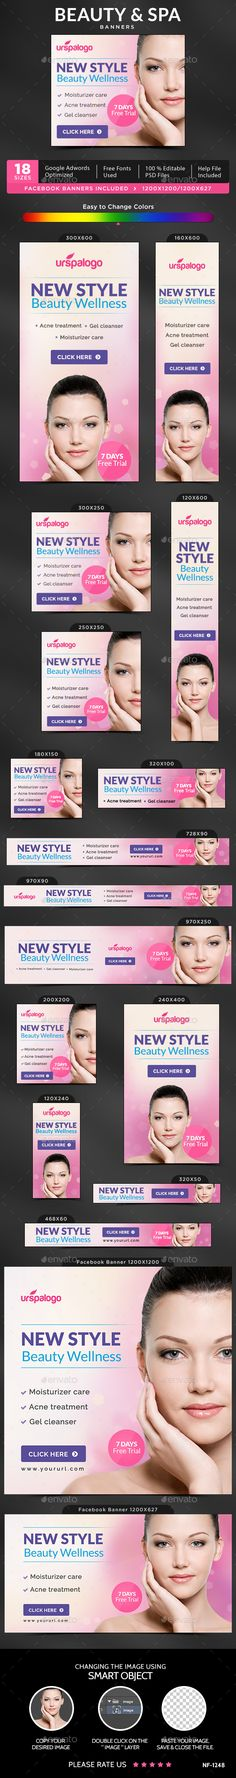 Beauty & Spa Banners Template PSD. Download here: http://graphicriver.net/item/beauty-spa-banners/15865934?ref=ksioks